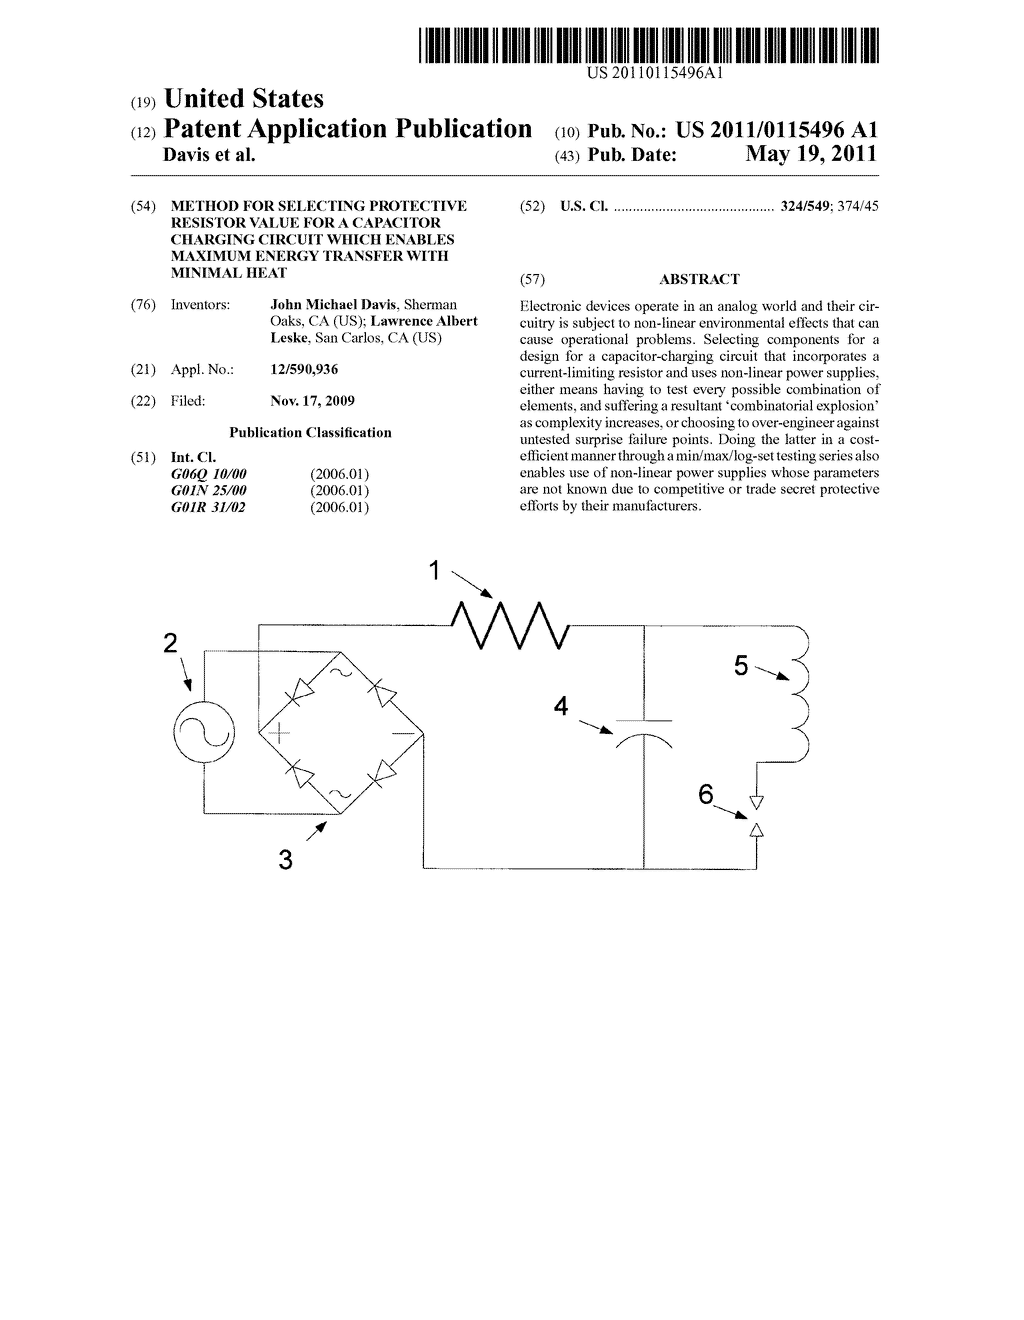 Method For Selecting Protective Resistor Value A Capacitor Diagram The Is Charging Circuit Which Enables Maximum Energy Transfer With Minimal Heat